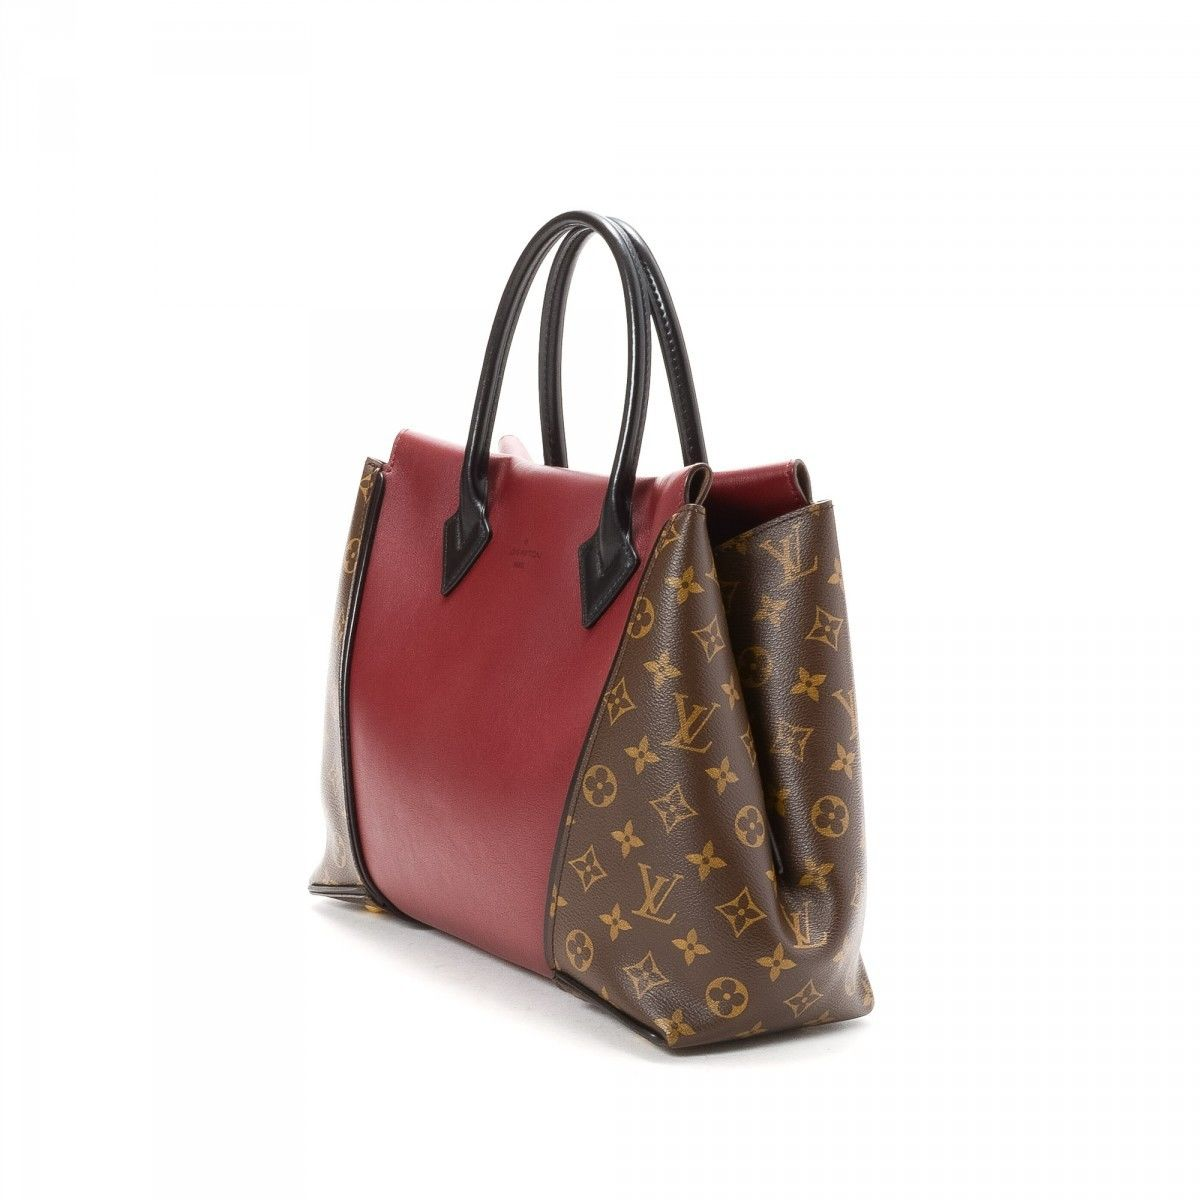 0d5711c8a064 Louis Vuitton W Tote PM Cuir Orfevre Coated Canvas - LXRandCo - Pre ...